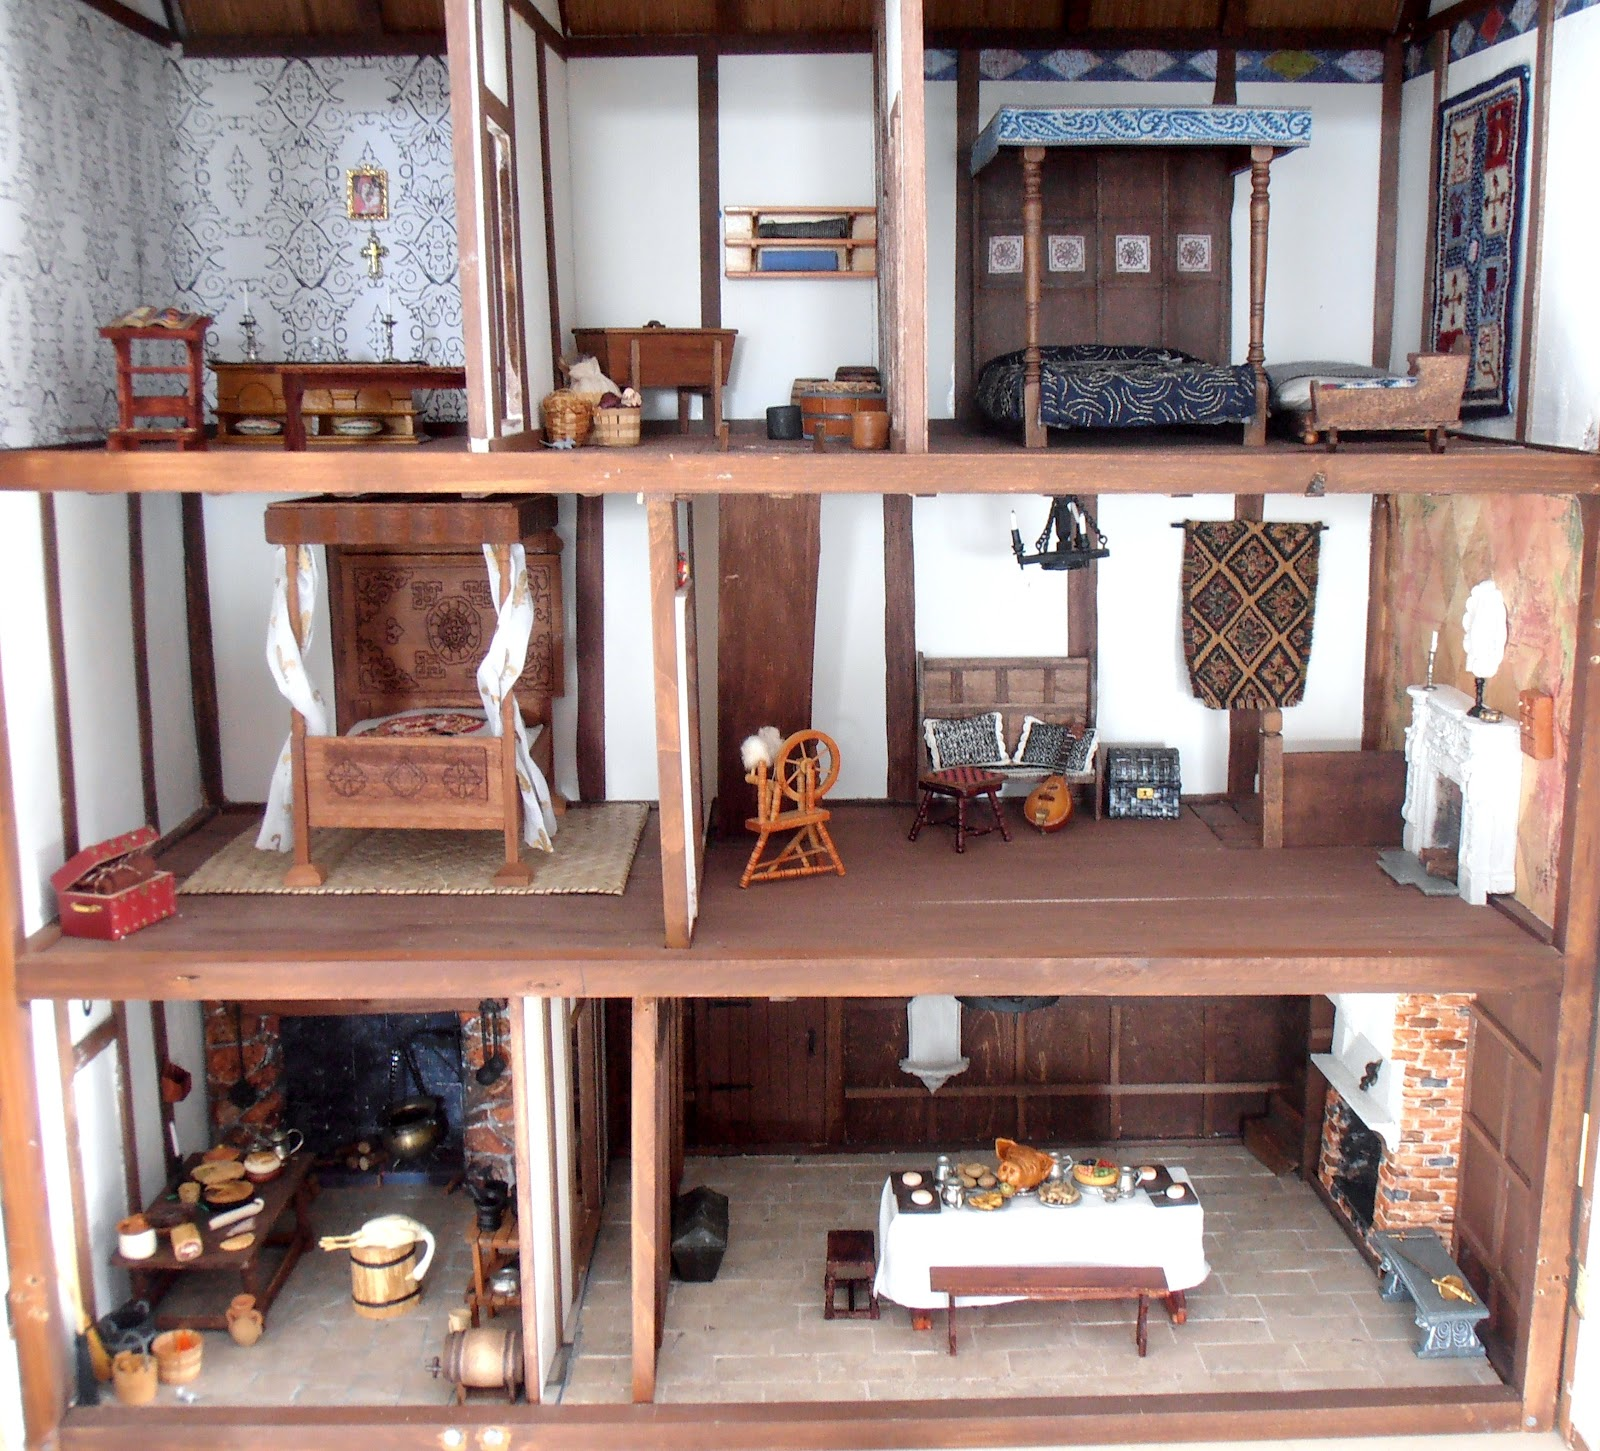 The Dolls House Dolls Houses And Minis Tudor Dolls House More On The